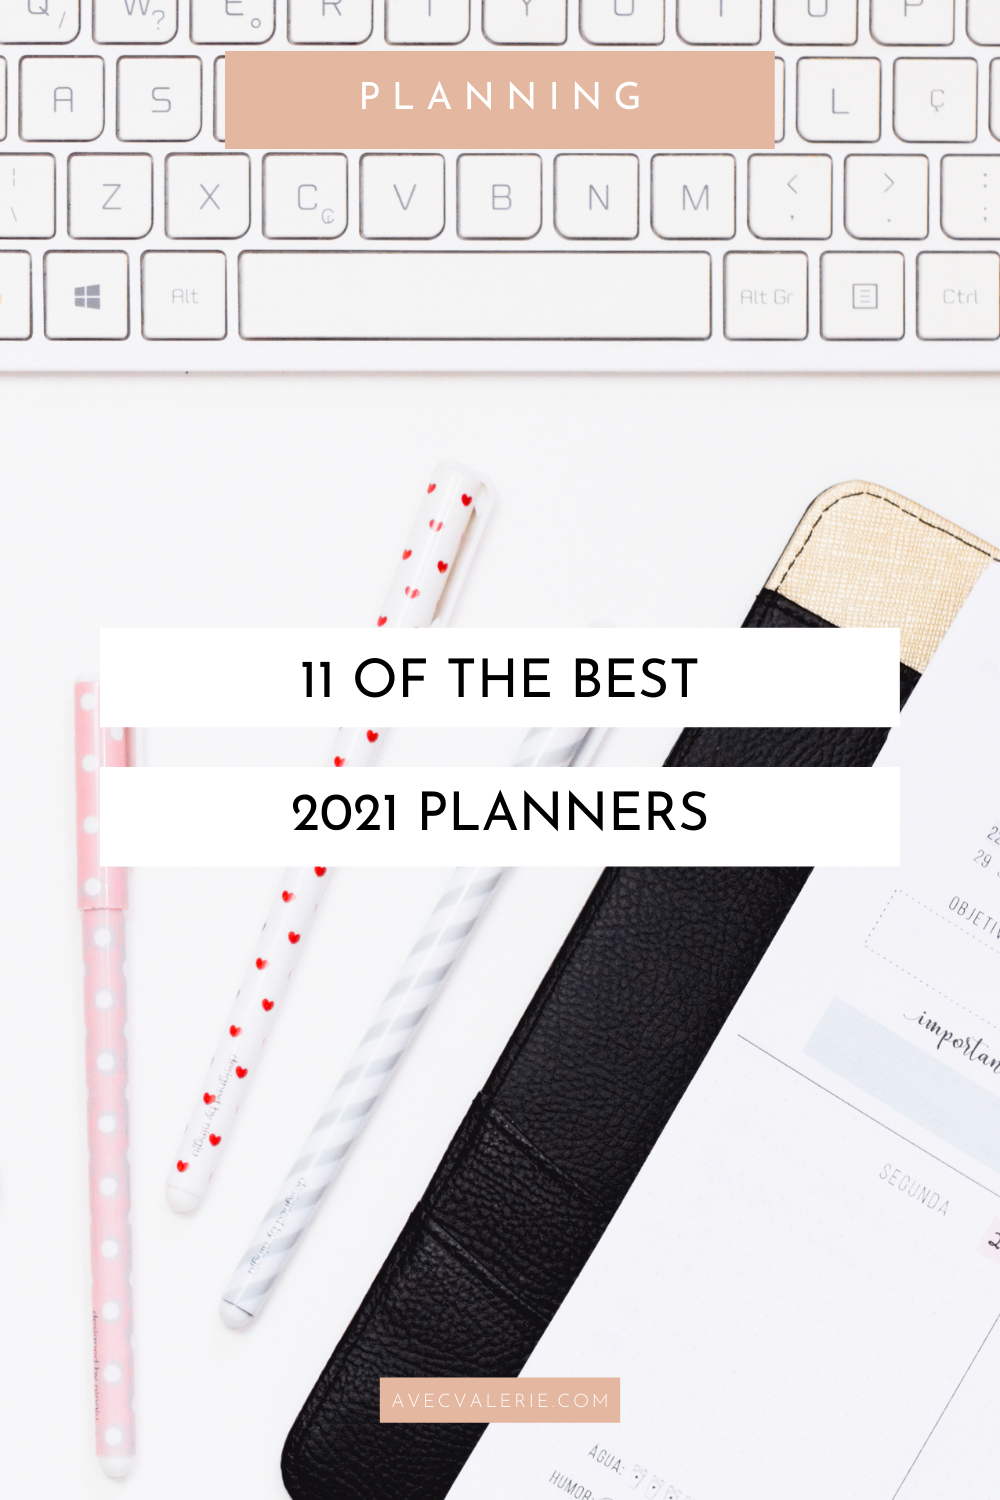 11 of the Best 2021 Planners to Boost Productivity